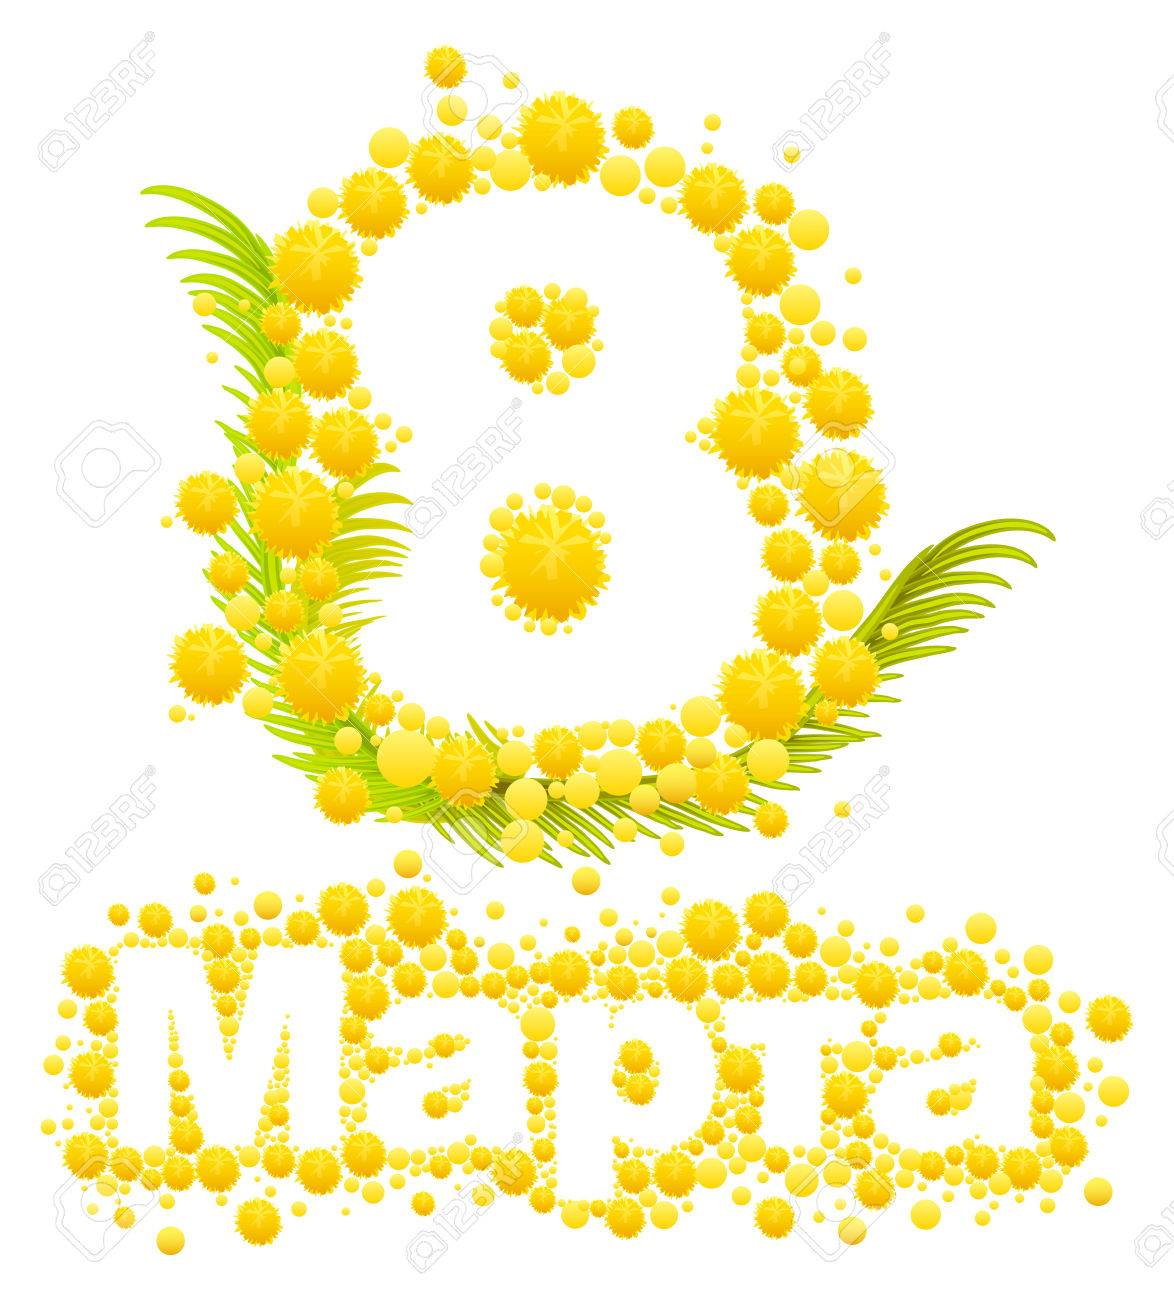 Yellow mimosa flower mimosa flower symbol of womens day yellow mimosa flower mimosa flower symbol of womens day congratulations on march 8 biocorpaavc Choice Image